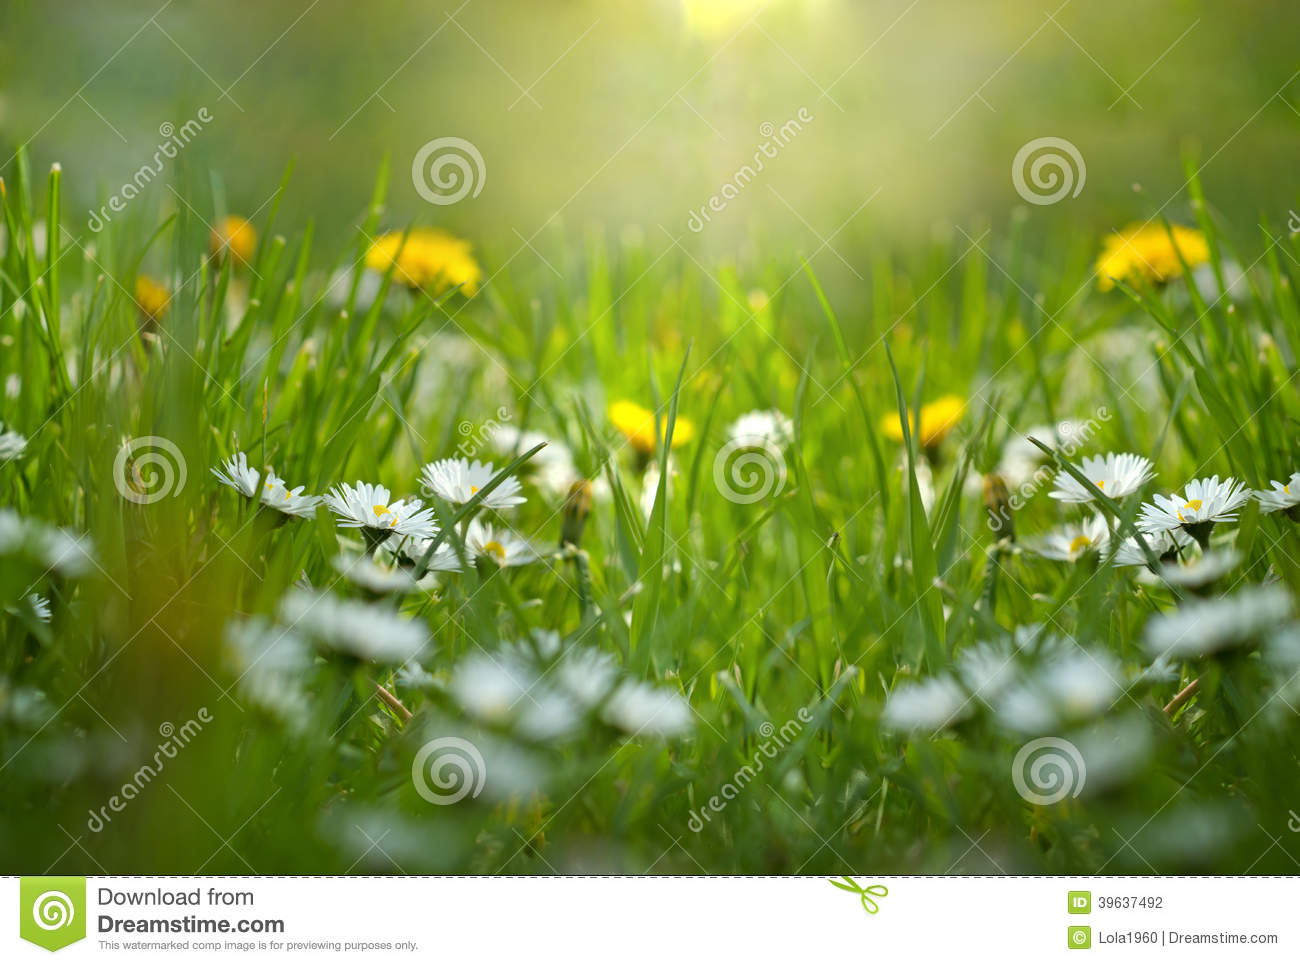 Little Daisy And Dandelion In Meadow Stock Photo.